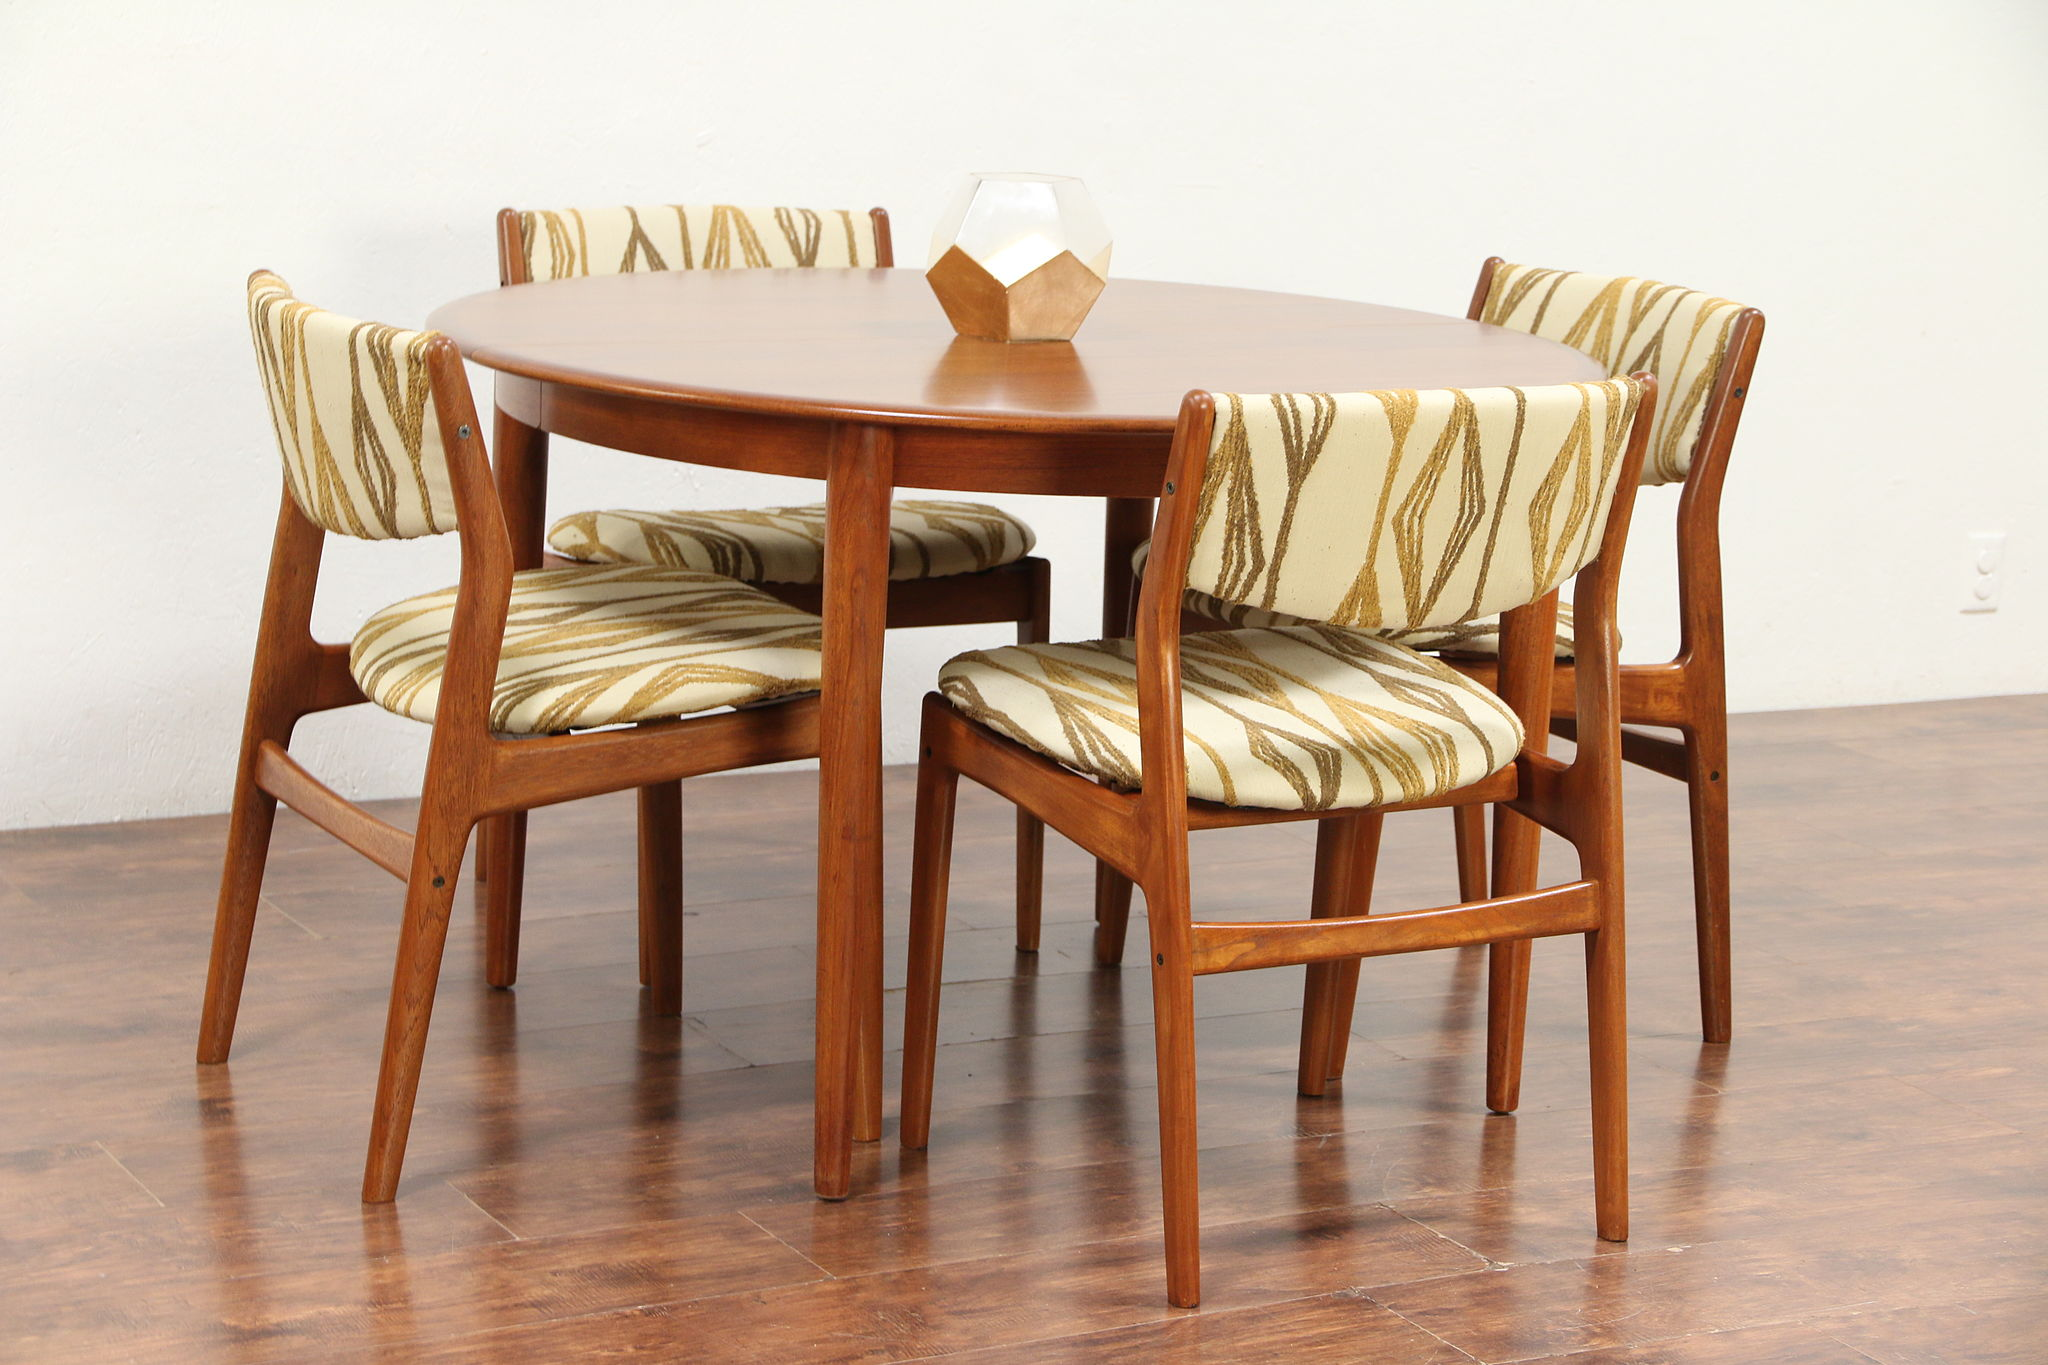 Miraculous Midcentury Modern Danish Teak Dining Set Table 4 Chairs Glostrup 29717 Bralicious Painted Fabric Chair Ideas Braliciousco